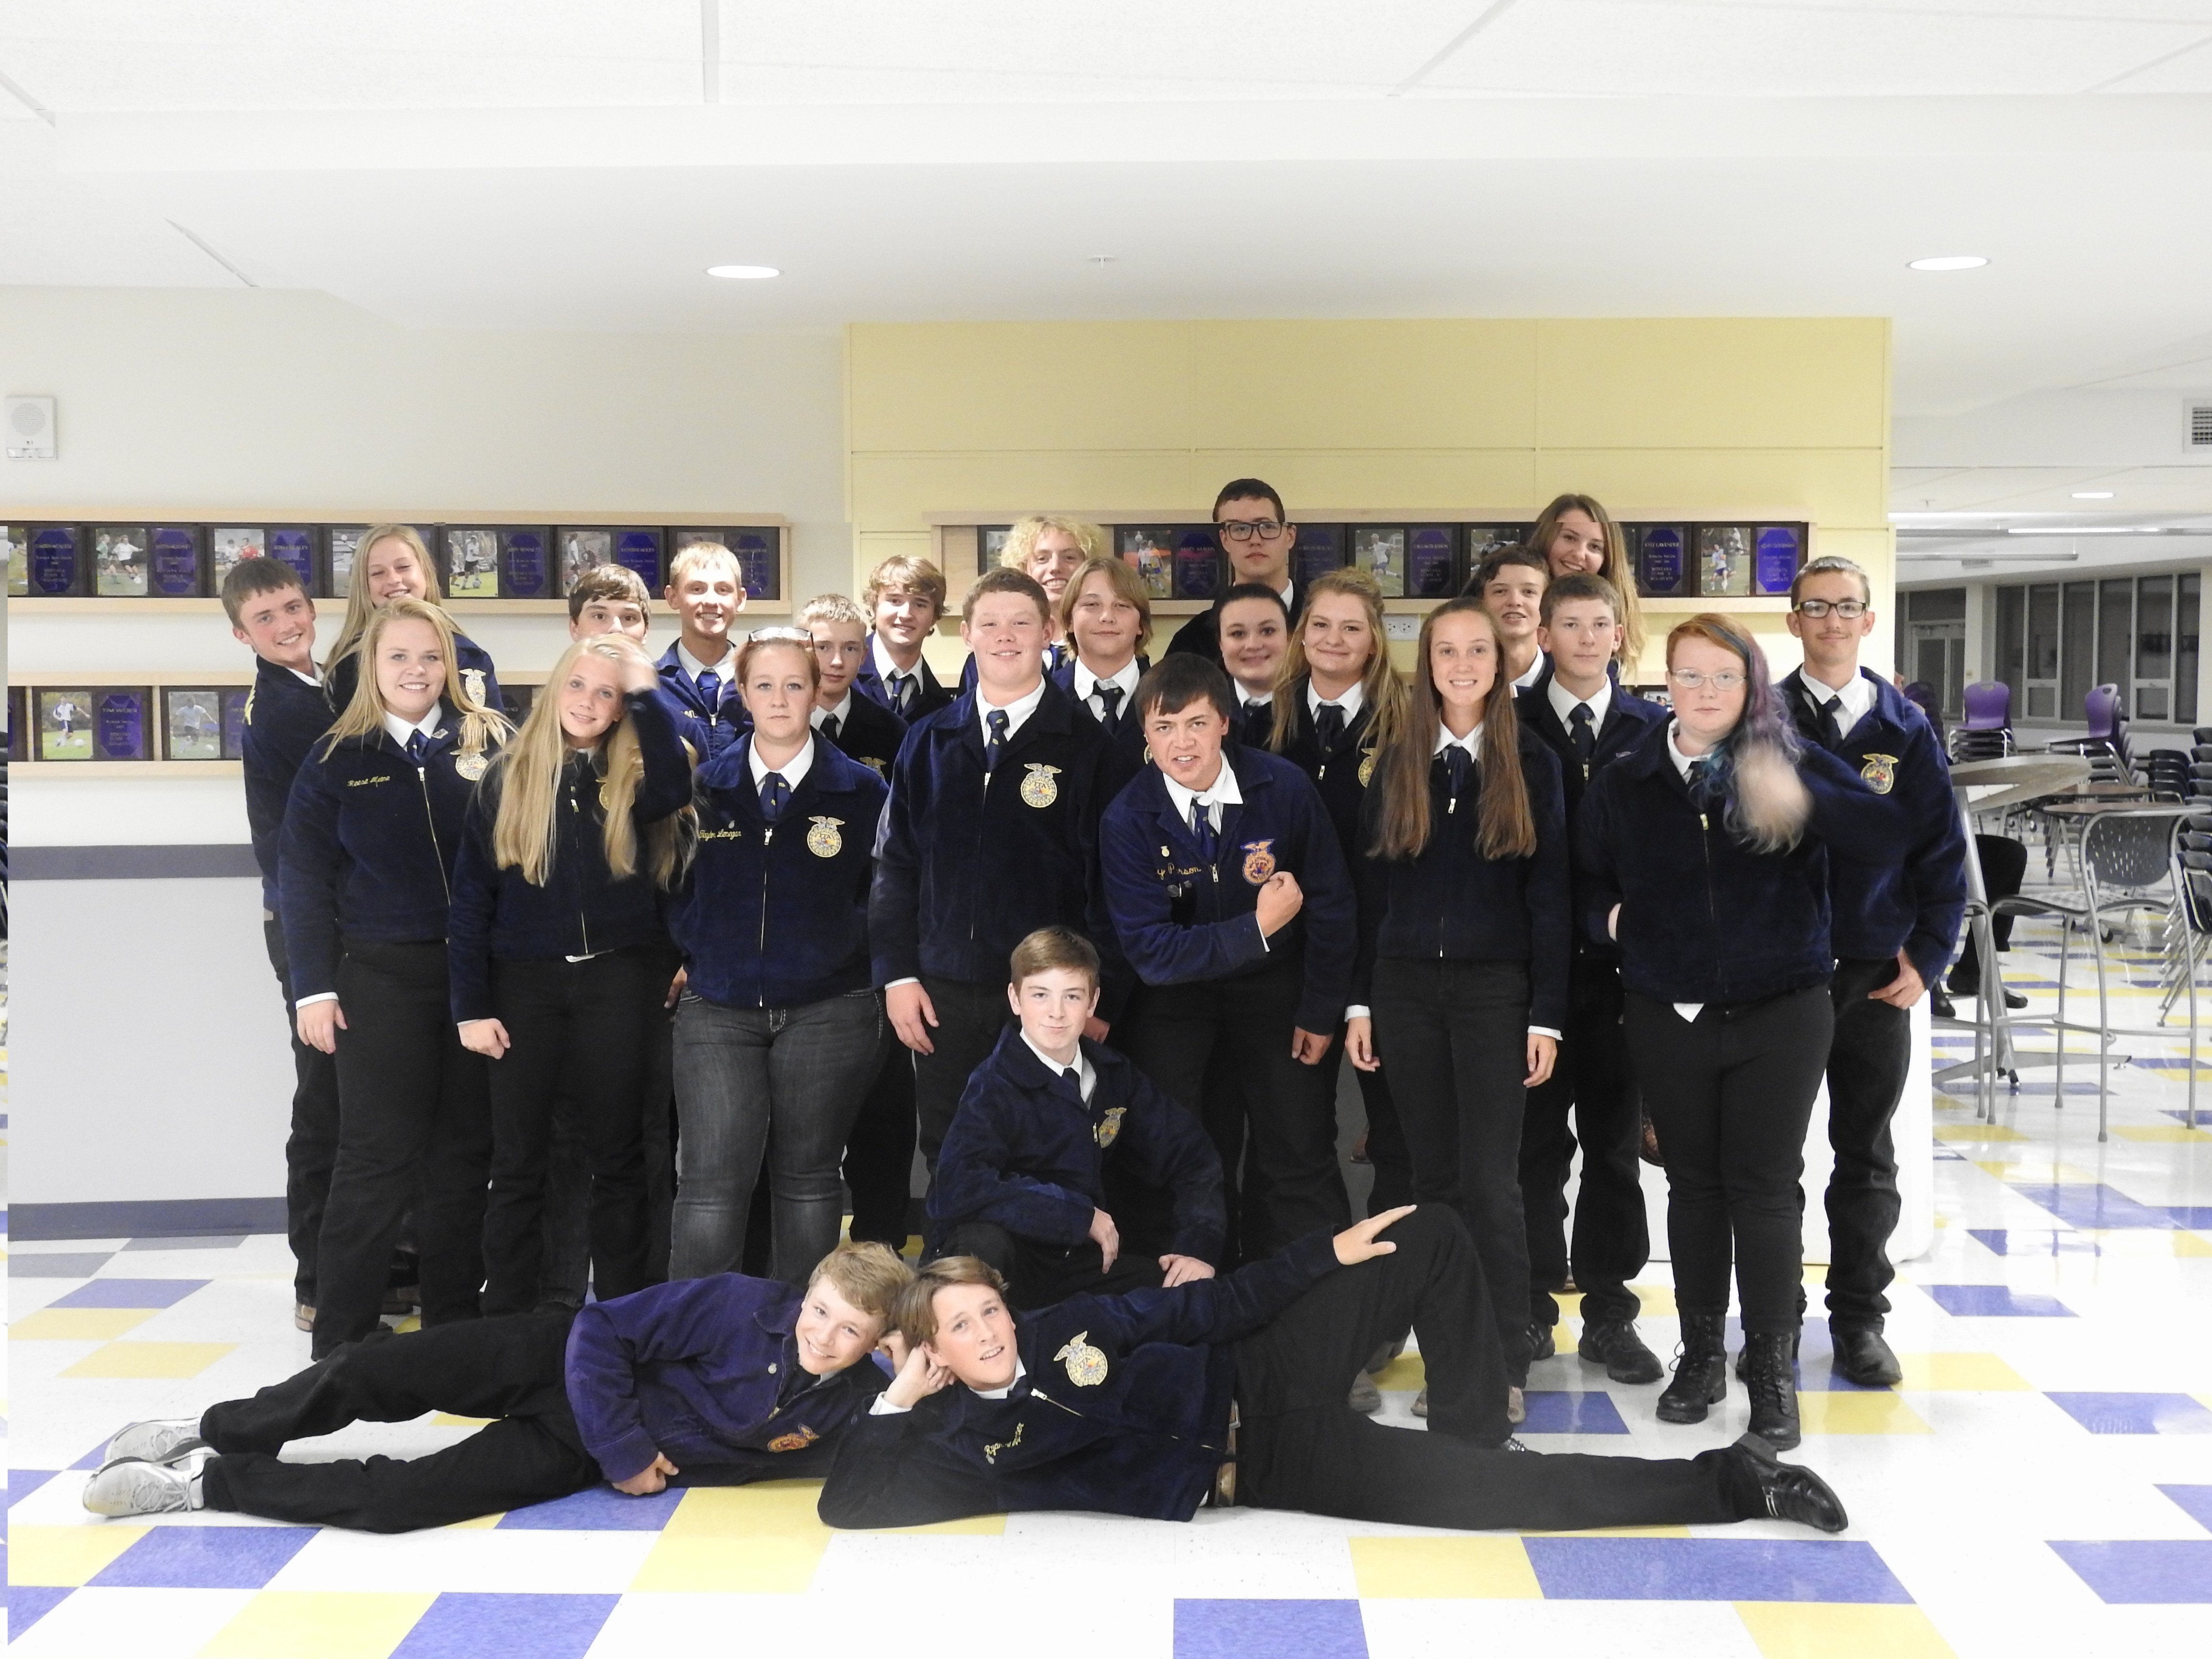 A group photo of the FFA team posing in the school hallway